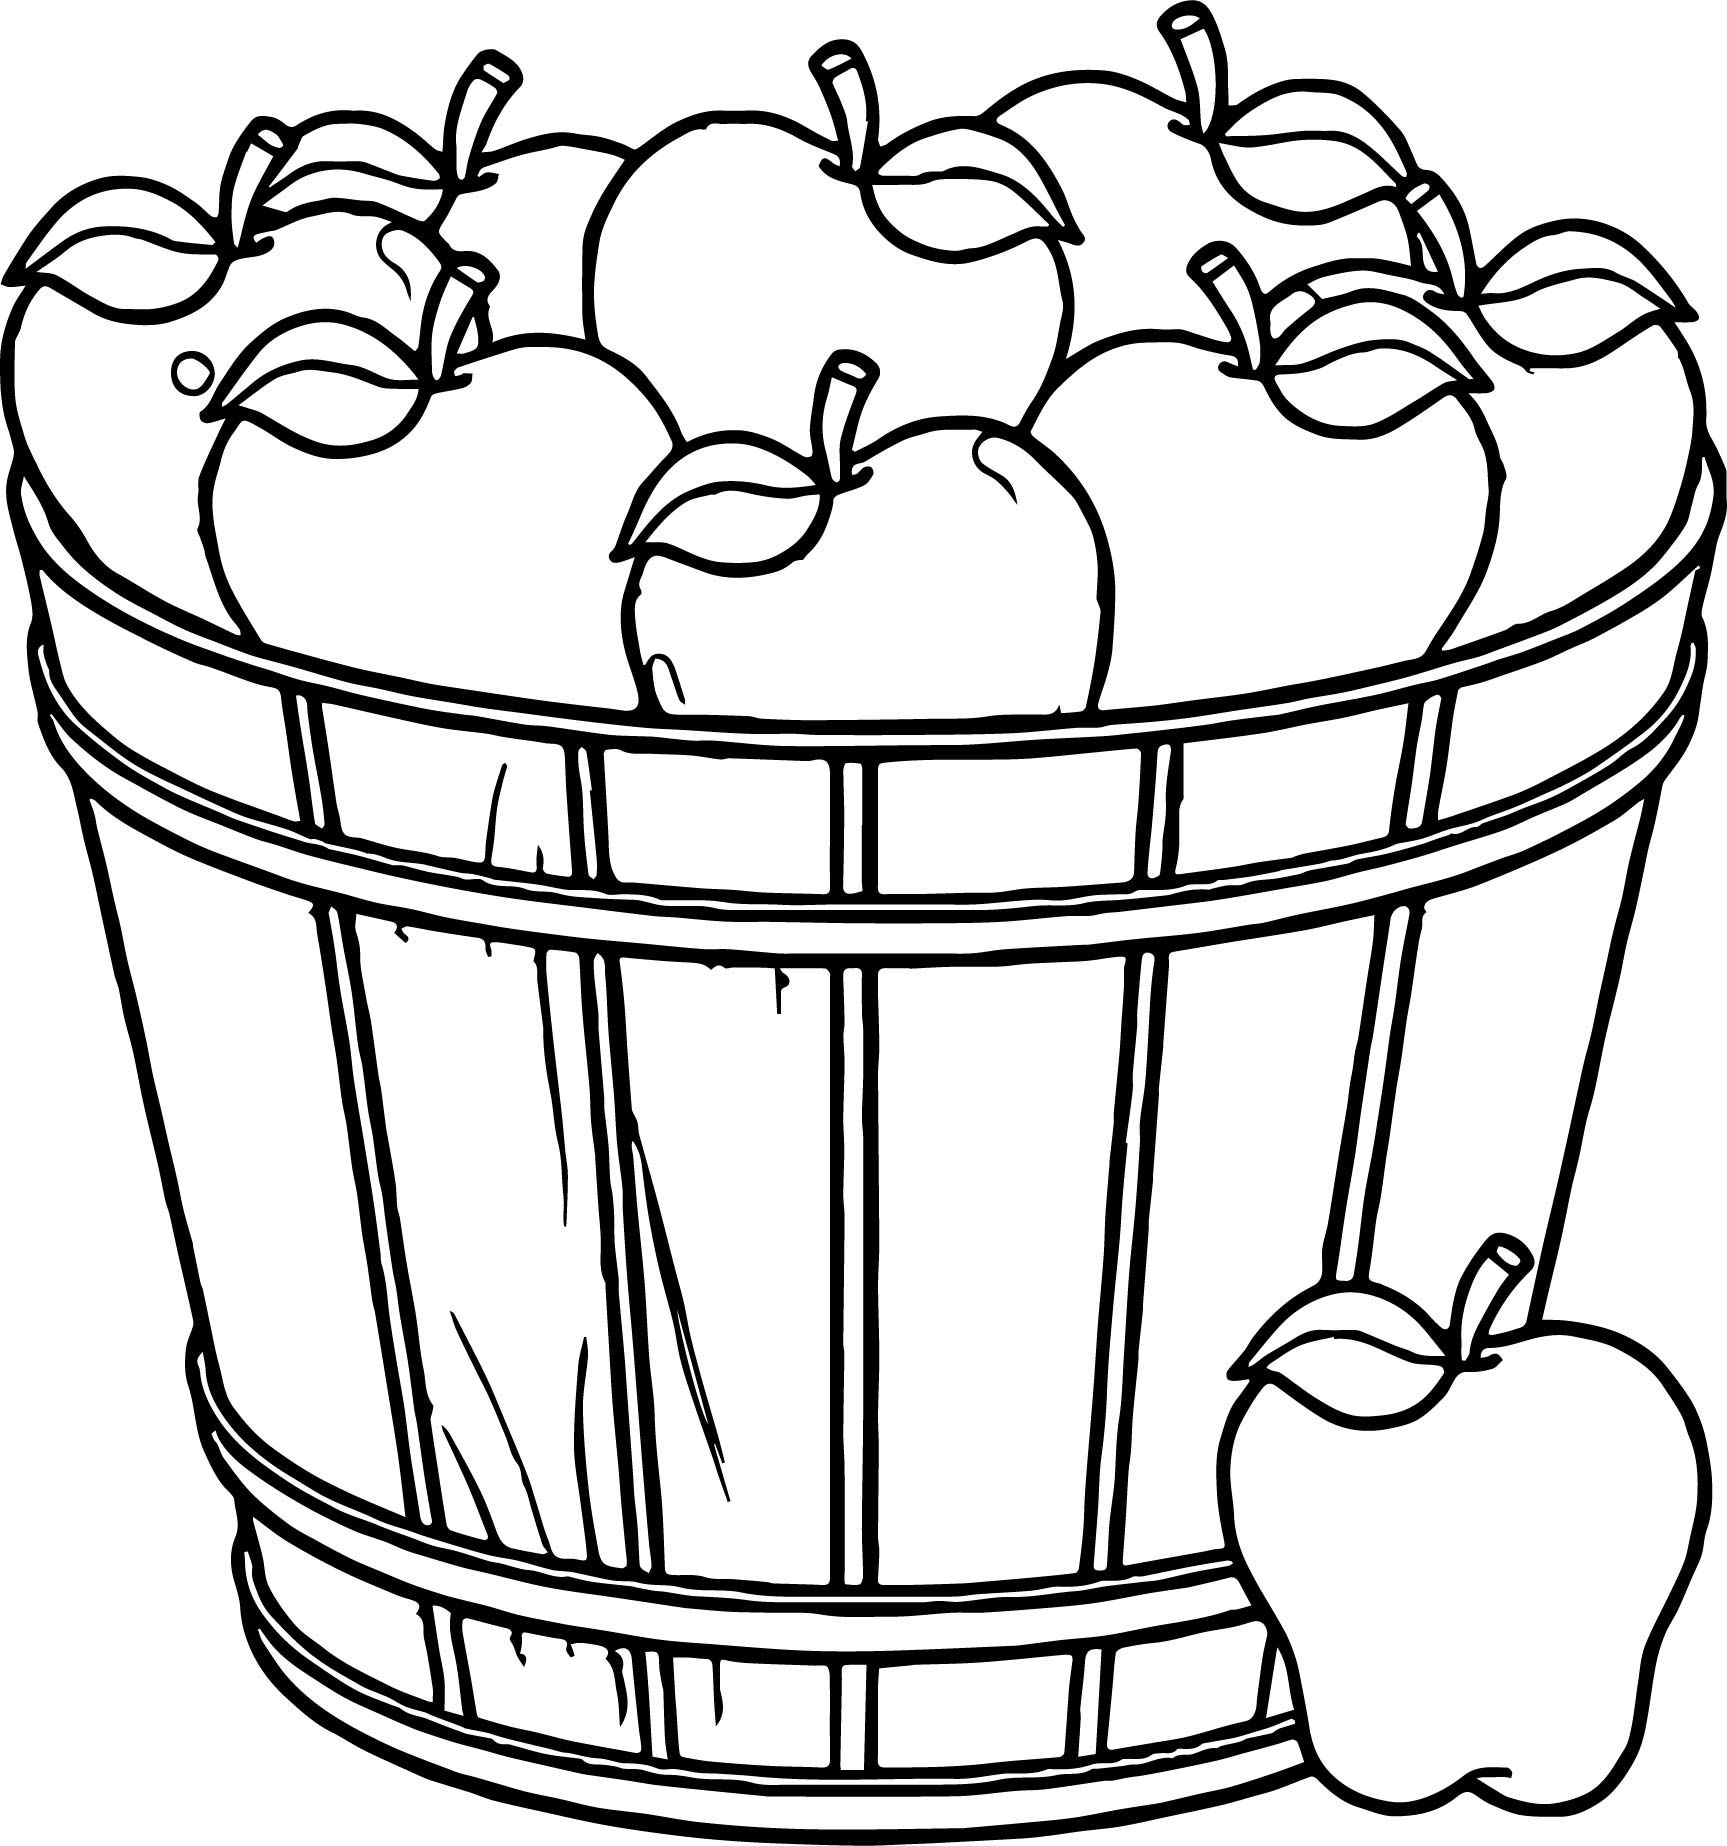 Cool Apple Basket Coloring Page